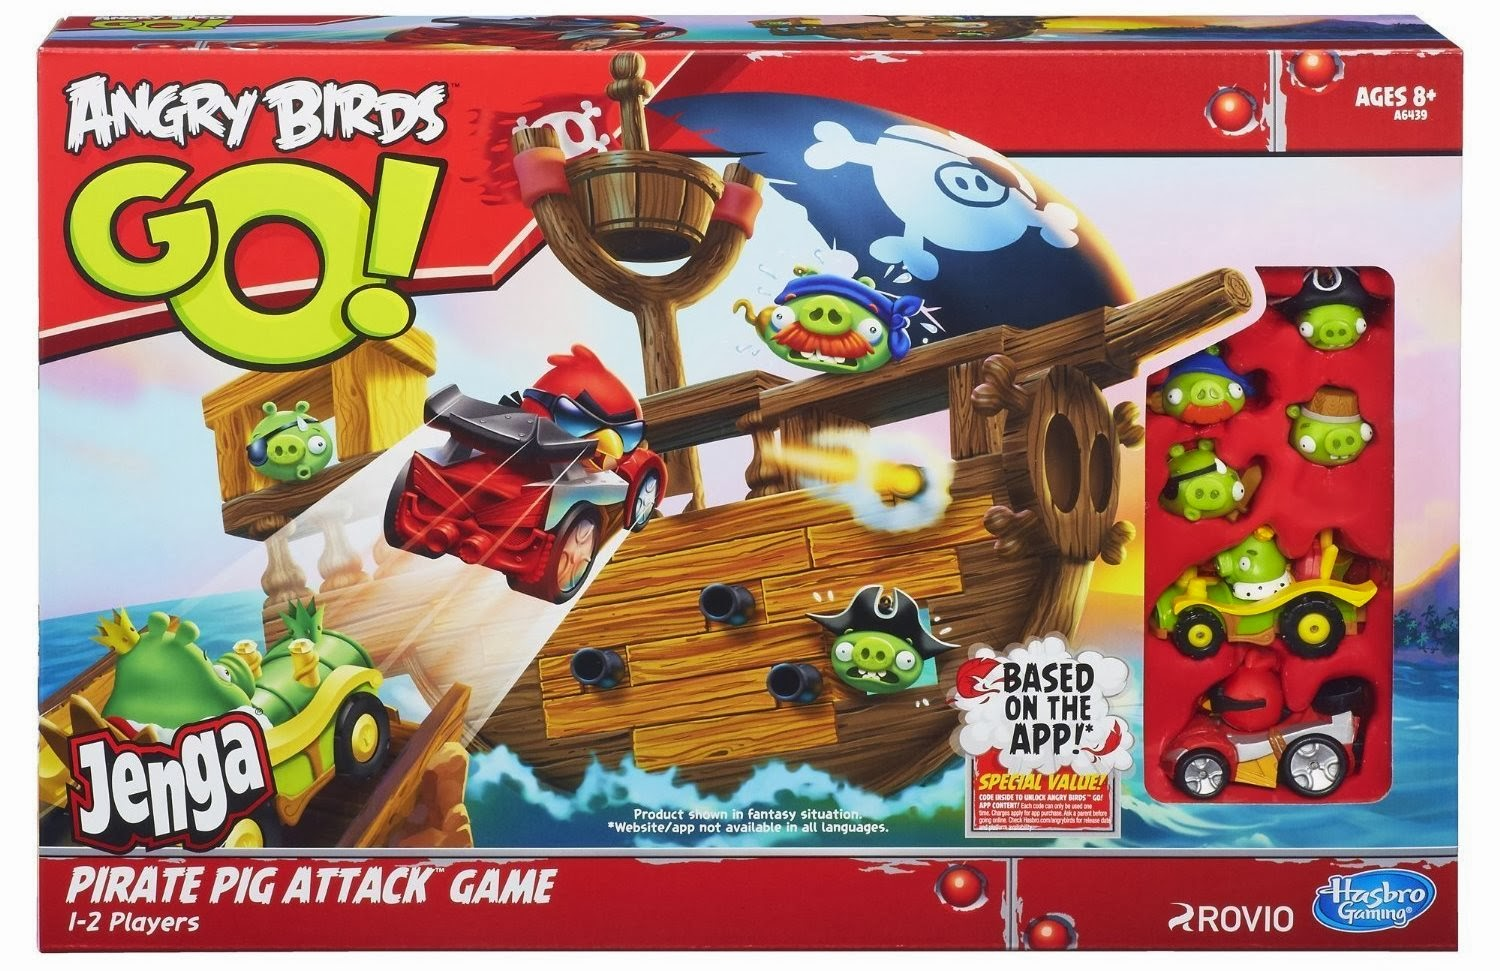 Loving Life: Angry Birds Go! Jenga Pirate Pig Attack Game Review